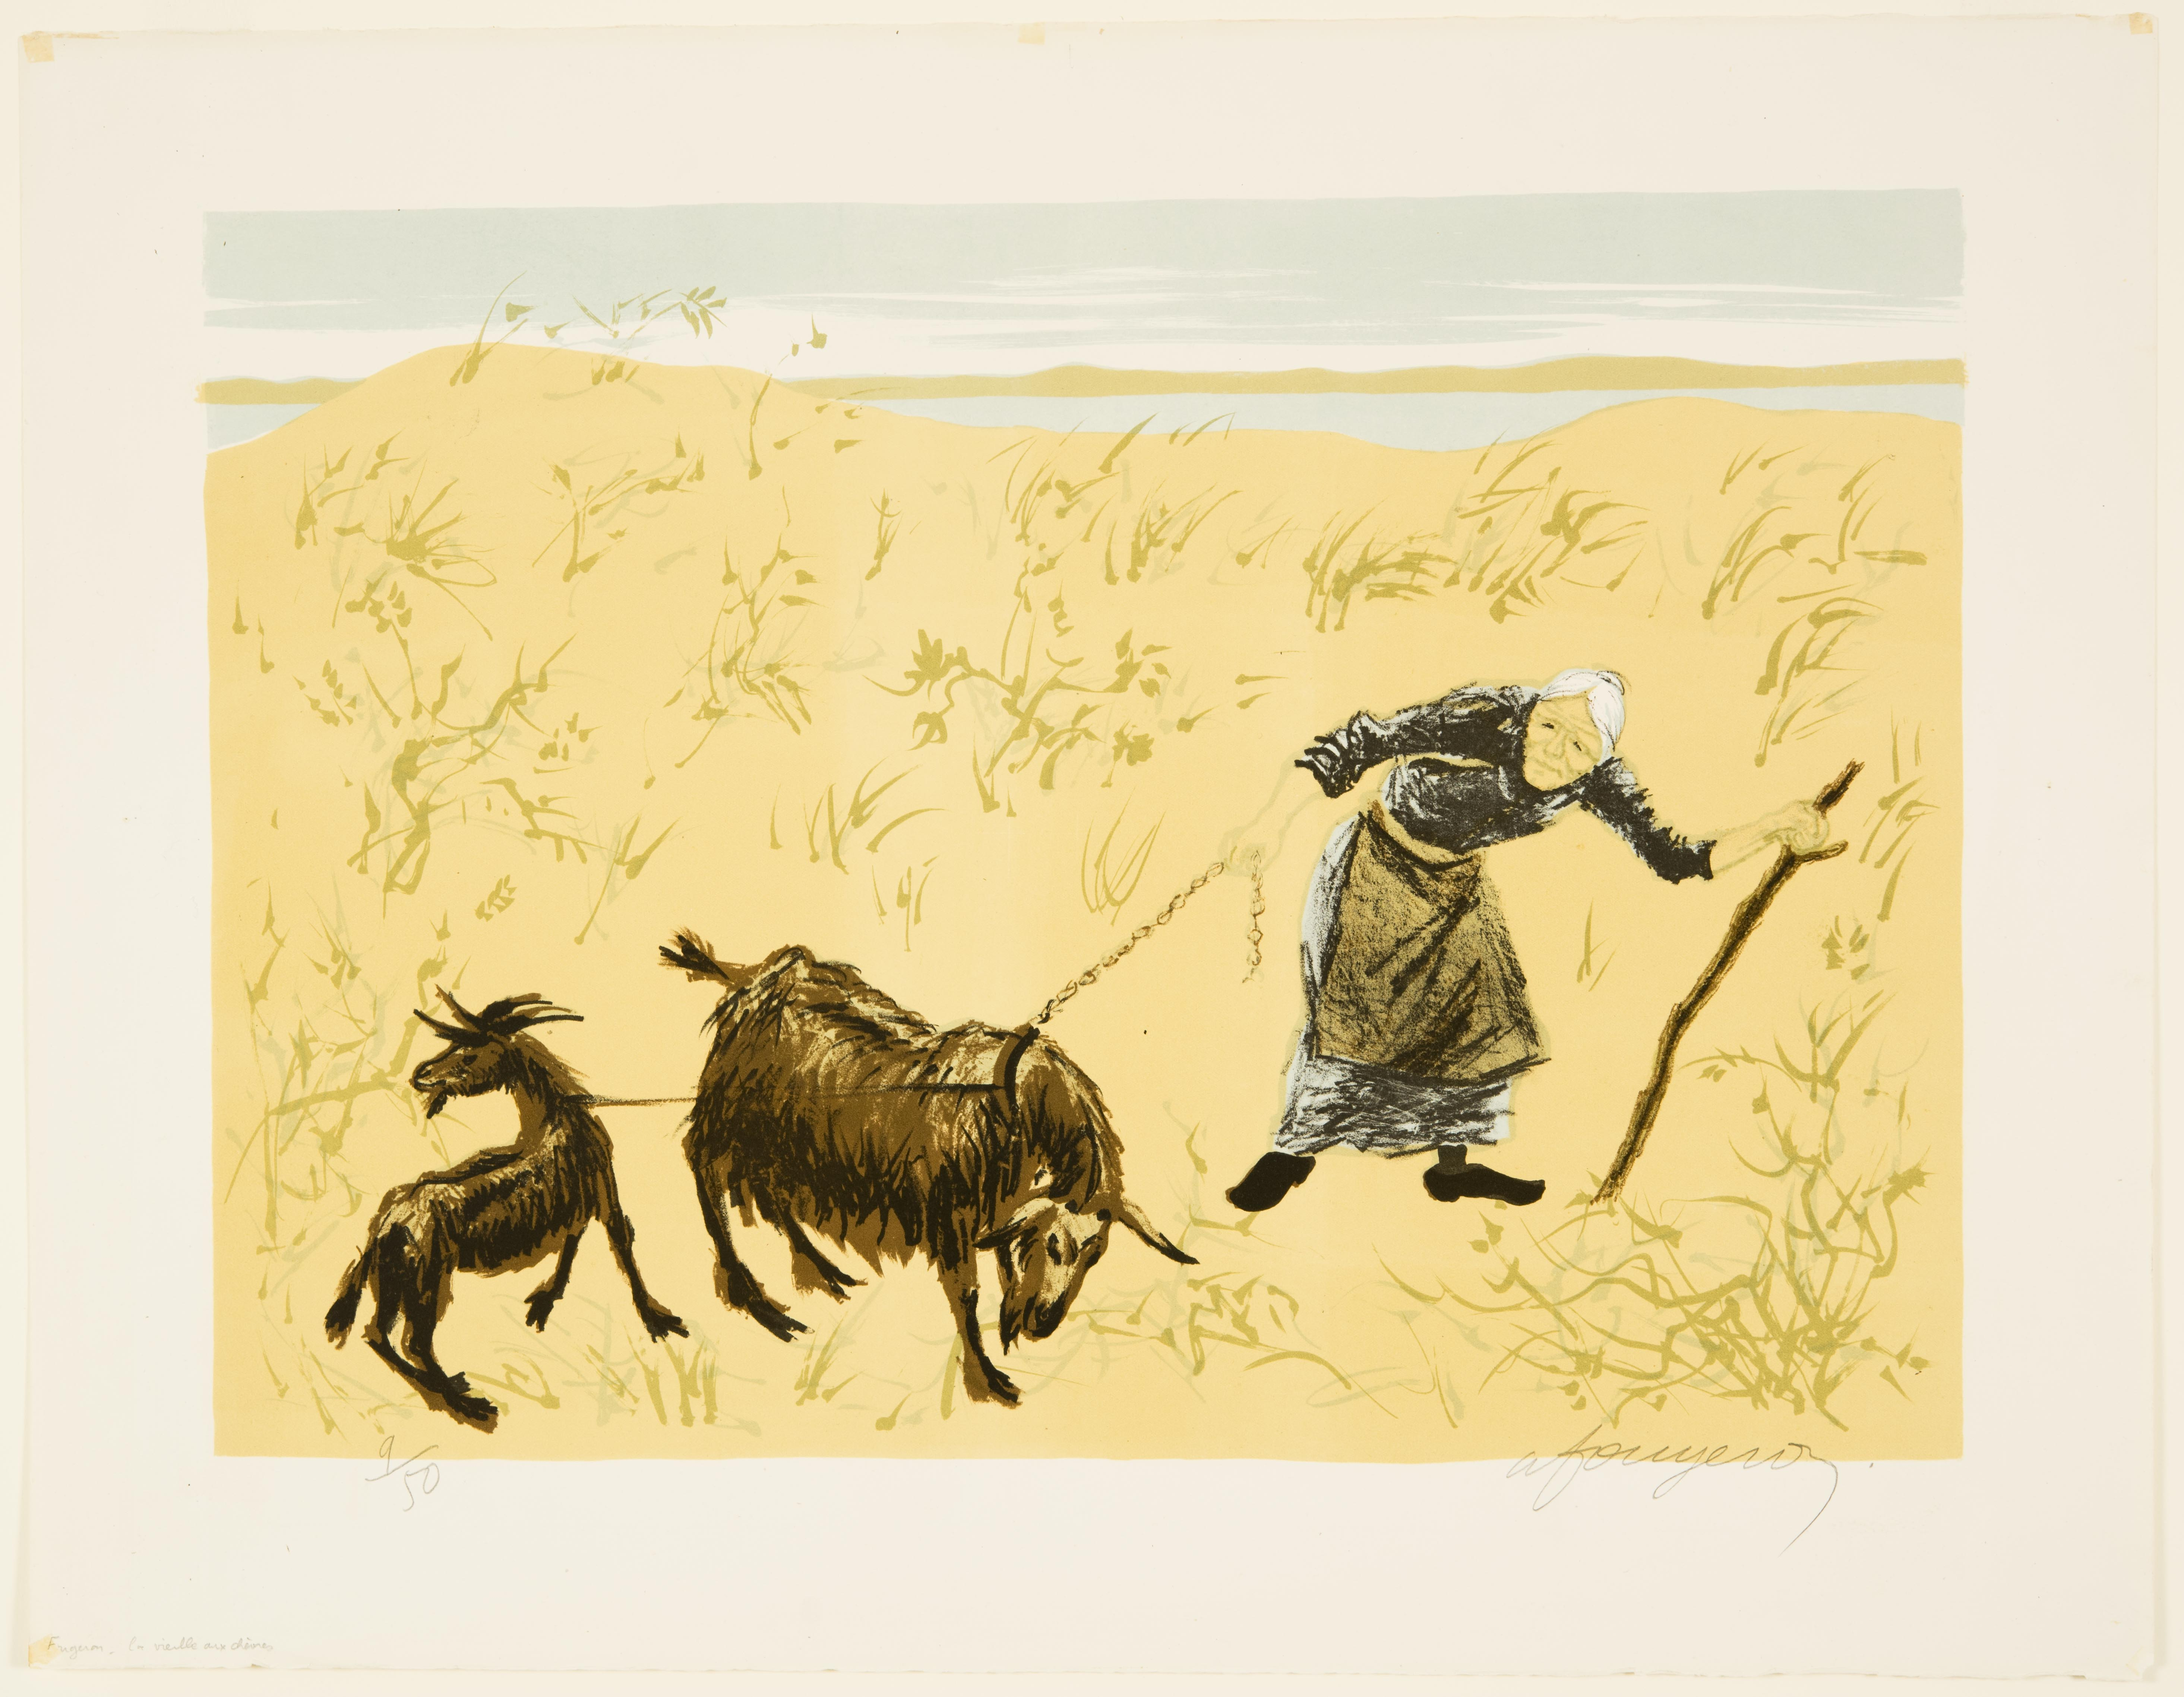 André Fougeron, Old Woman with Goats, n.d.